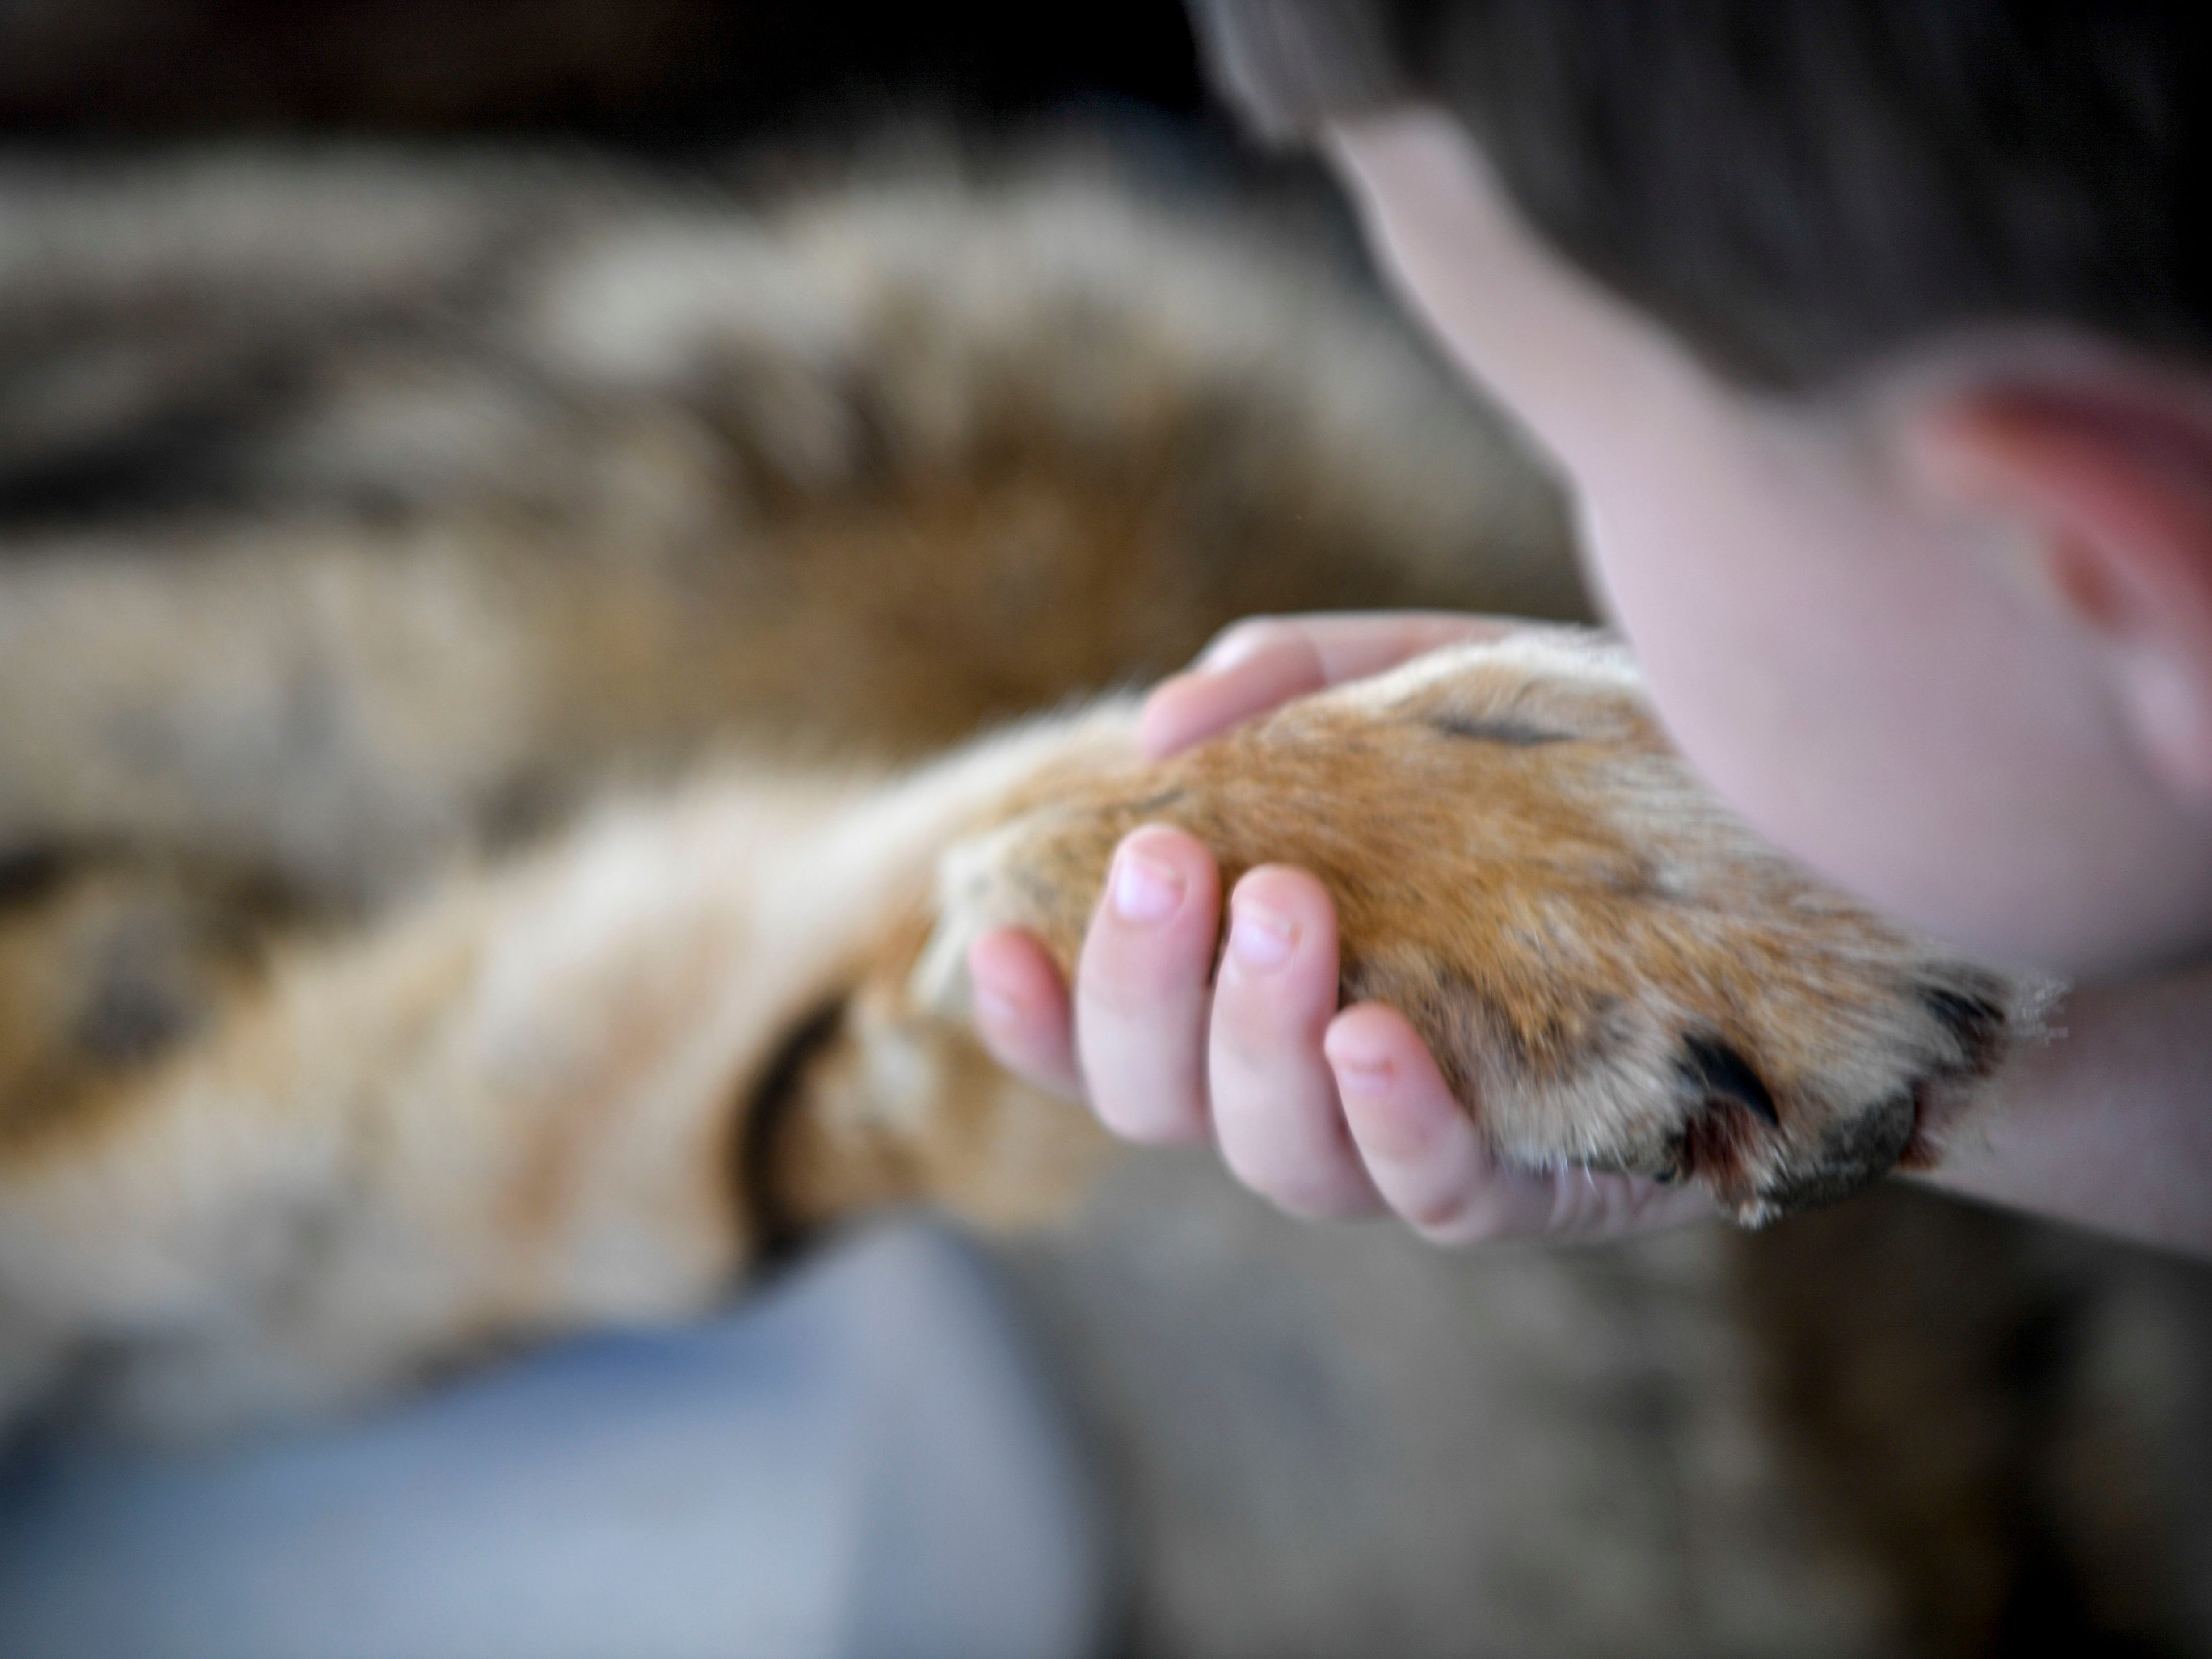 A young boy feels the pelt of a grey fox at the Day of Champions celebration held at Jackson Fairgrounds Park in Jackson, Tenn., on Wednesday, Sept. 19, 2018.